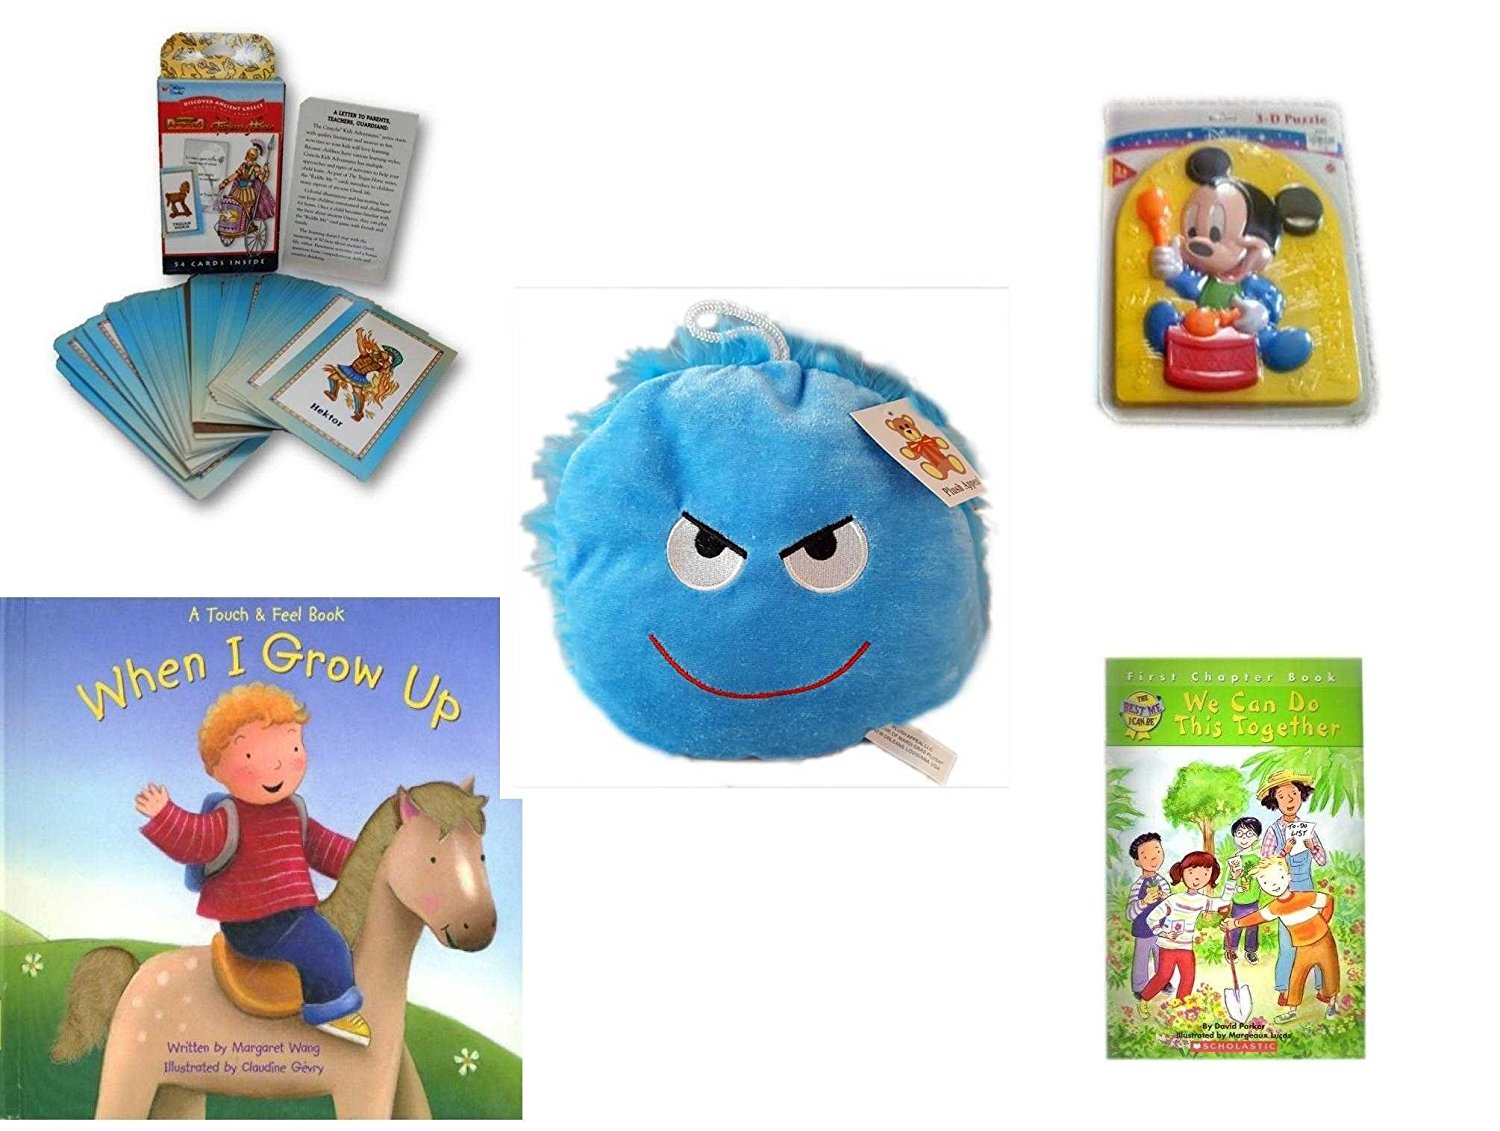 "Children's Gift Bundle - Ages 3-5 [5 Piece] - Discover Ancient Greece Riddle Me Playing Card Game - Preschool Disney Baby Mickey 3D Puzzle Toy - Plush Appeal Bright Blue Mischievous Face Plush 7"" -"